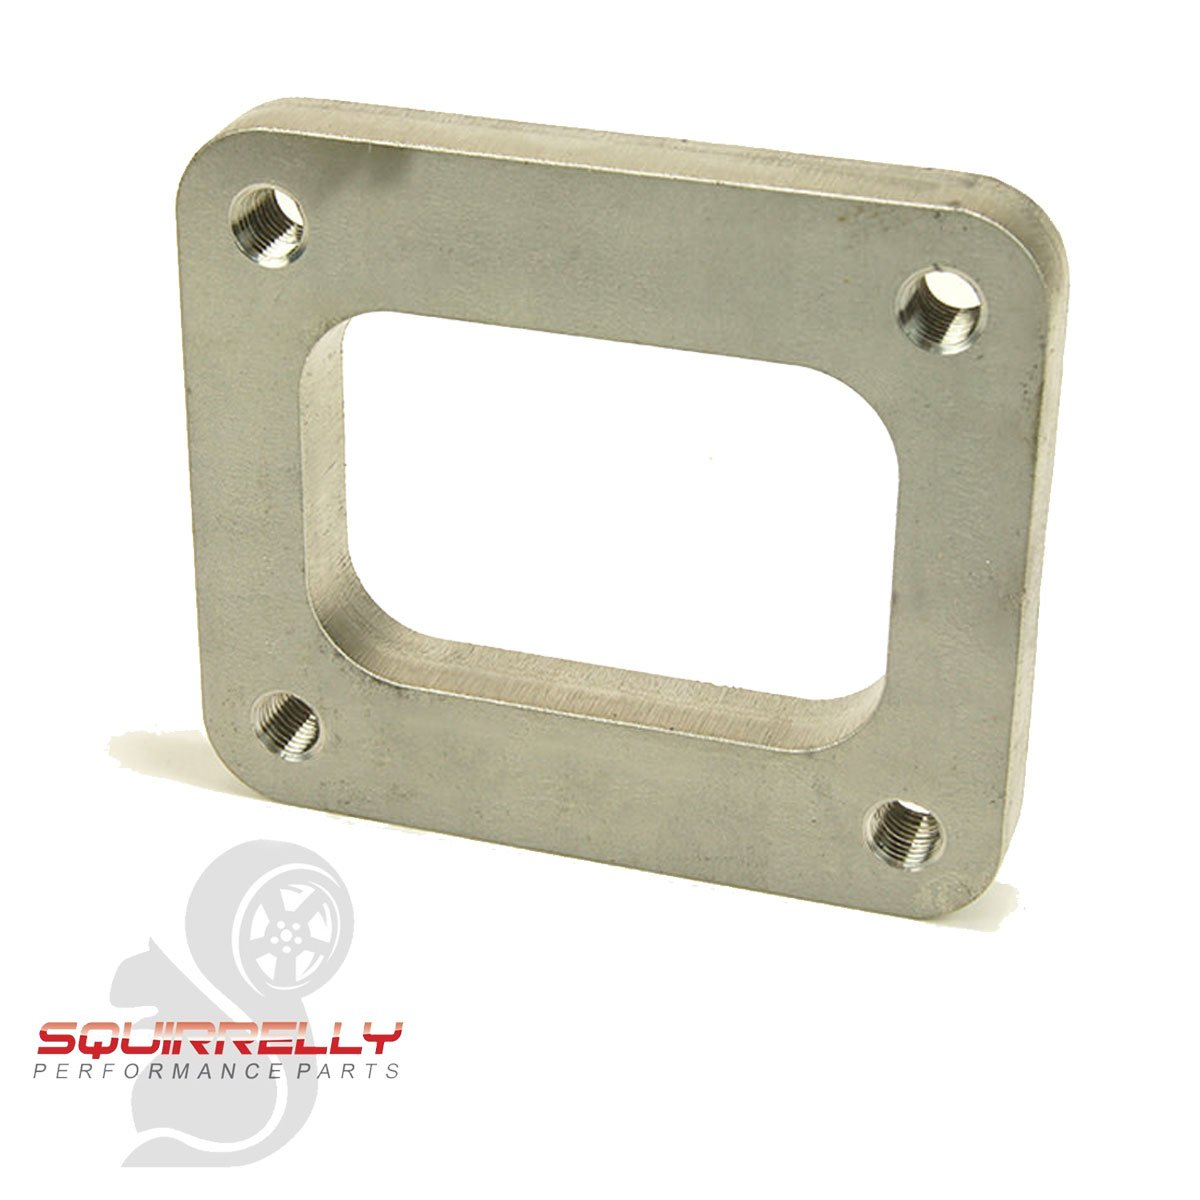 Squirrelly T4 304 Stainless Steel Non-Divided Turbo Inlet Flange Exhaust Manifold Squirrelly Performance Parts